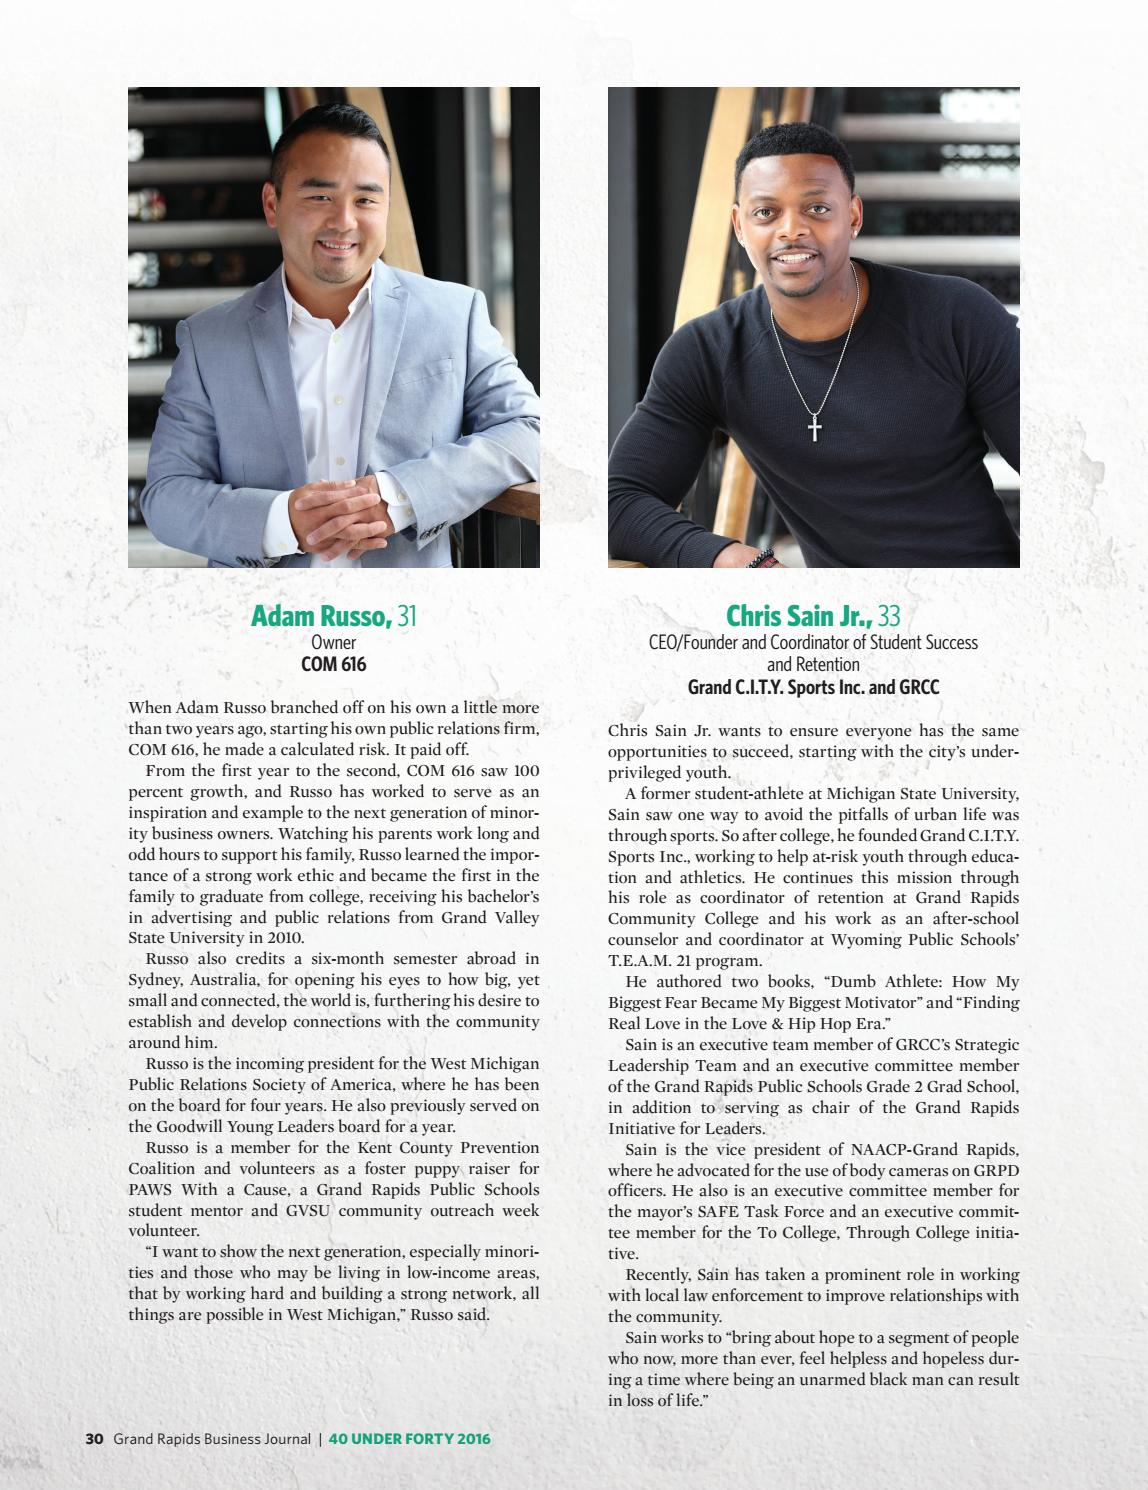 Adam Russo 40 under forty - 2016 - grand rapids business journal